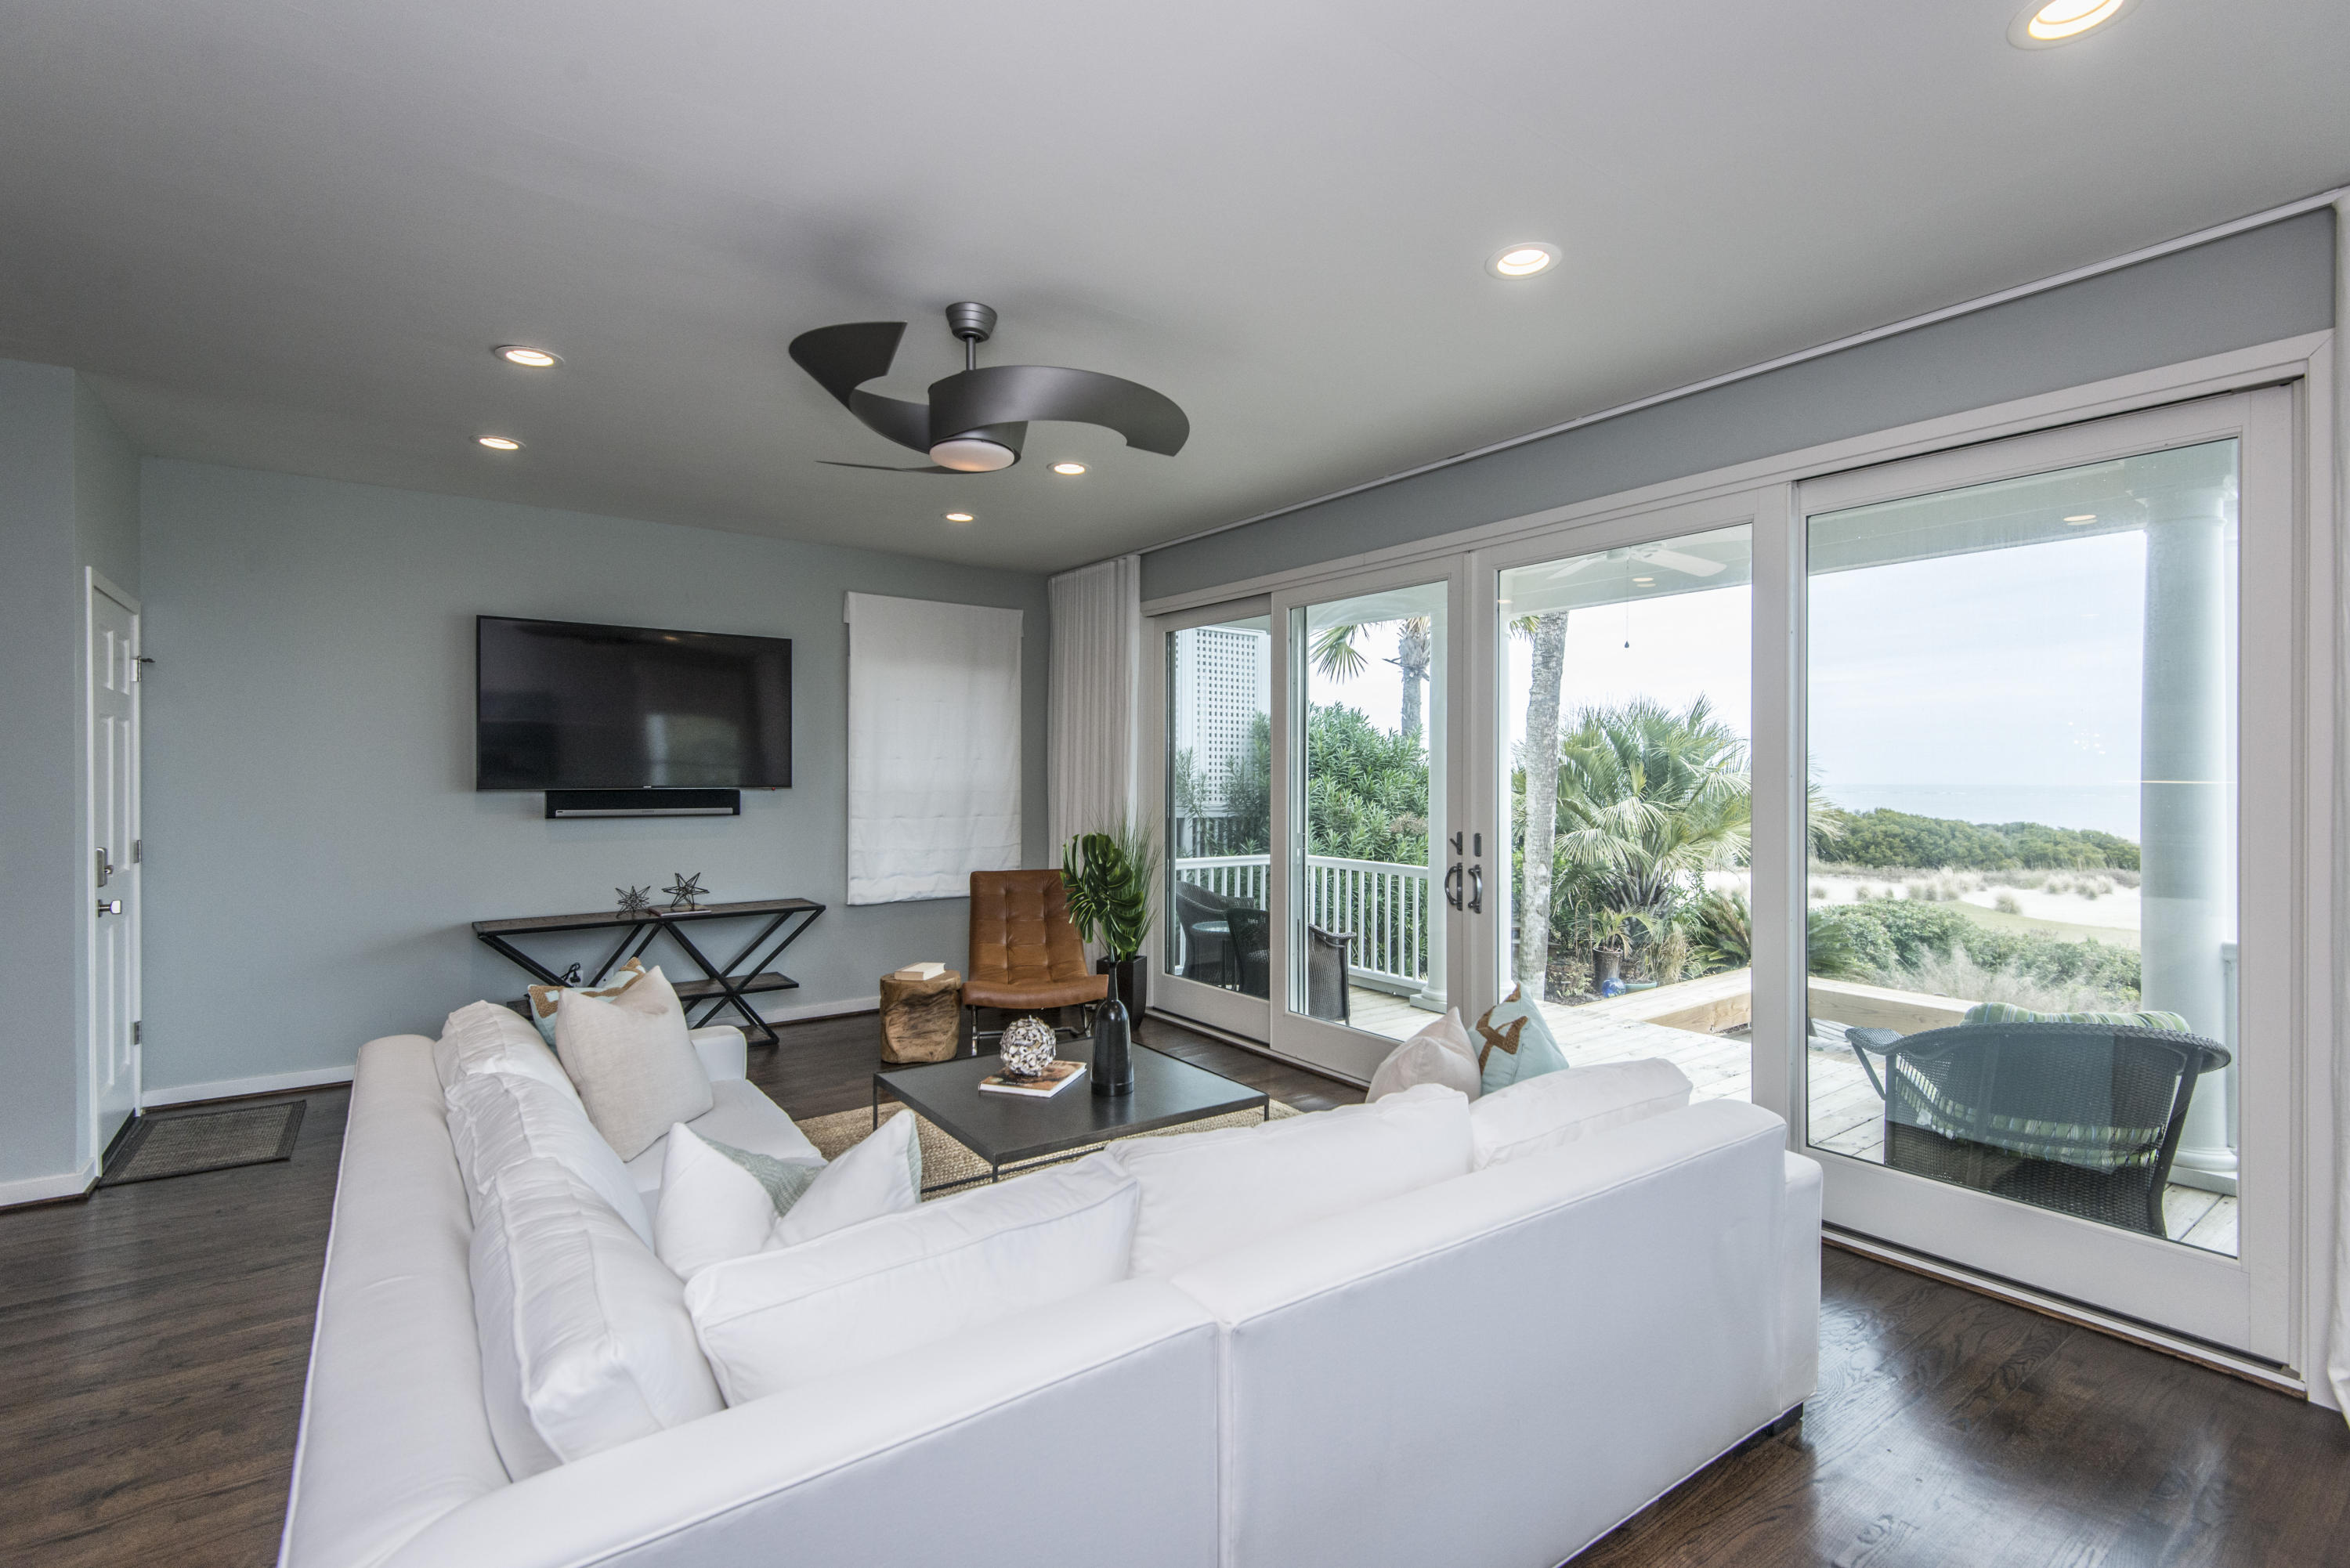 Photo of 42 Ocean Point Dr, Isle of Palms, SC 29451